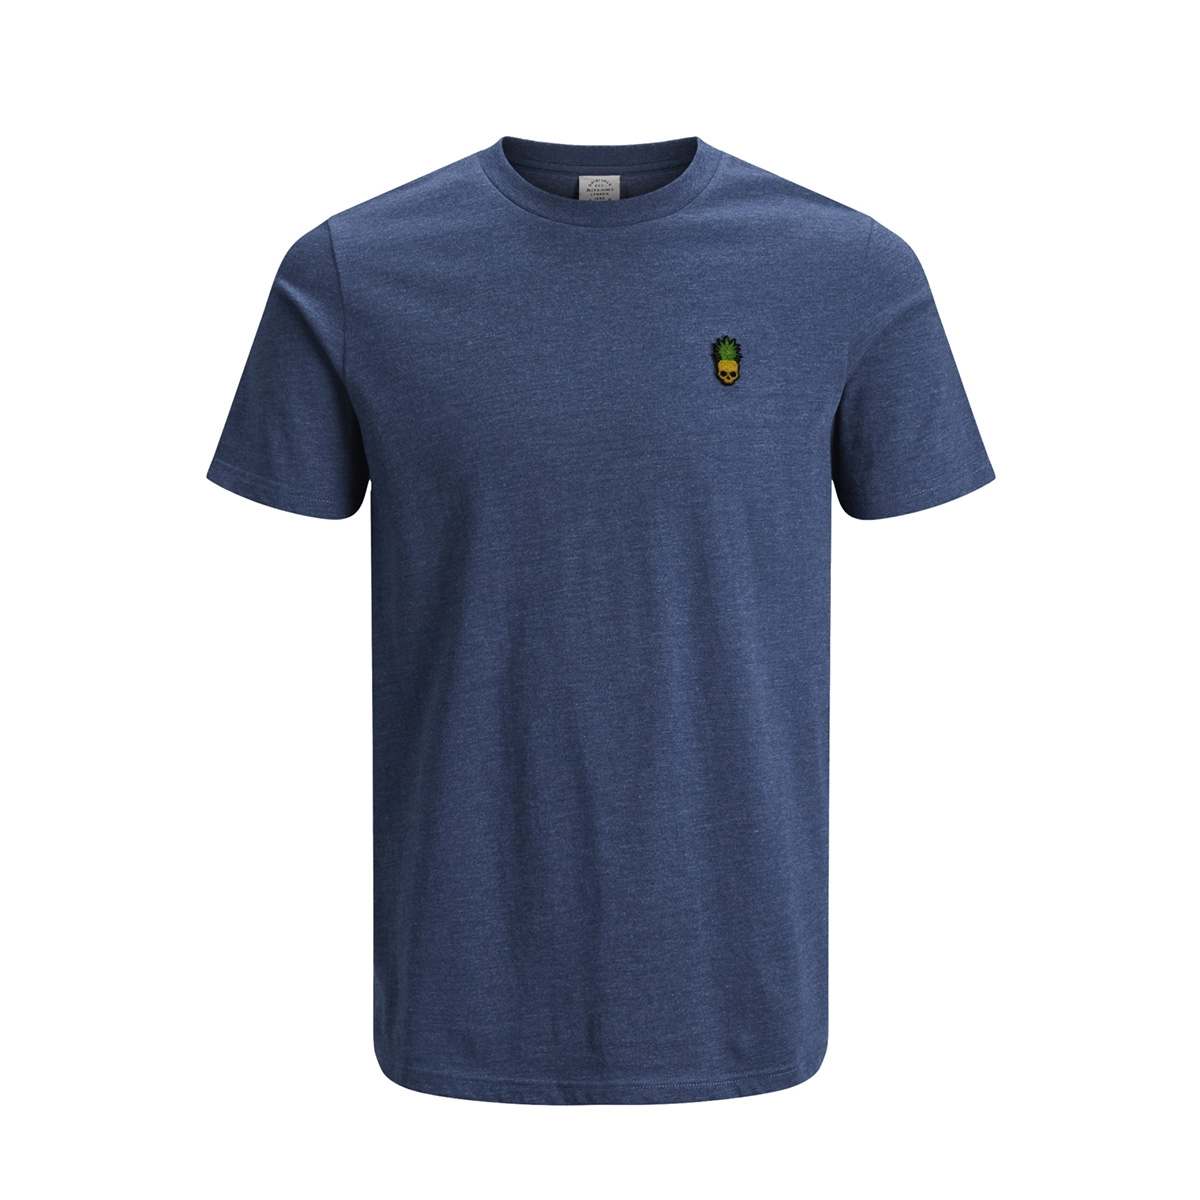 jormidnighty tee ss crew neck 12131826 jack & jones t-shirt estate blue